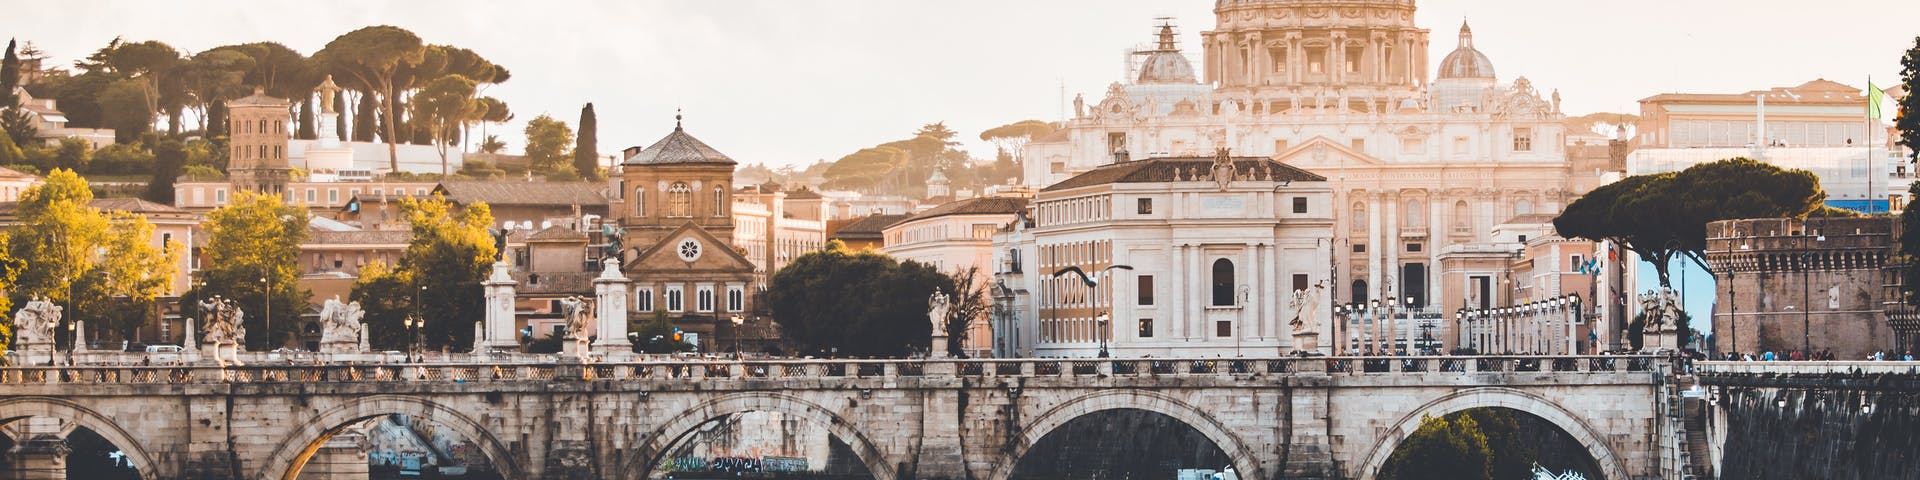 How to Apply to an International University in Italy in 2020 ... University Of Namibia Application For Admission Form on university of swaziland application forms, university of guyana application forms, university of witwatersrand application forms, university of botswana application forms, university of kwazulu natal application forms, university of zululand application forms, university of pretoria application forms, university of limpopo application forms, university of fort hare application forms, university of kzn application forms, university of johannesburg application forms, university of malawi application forms,